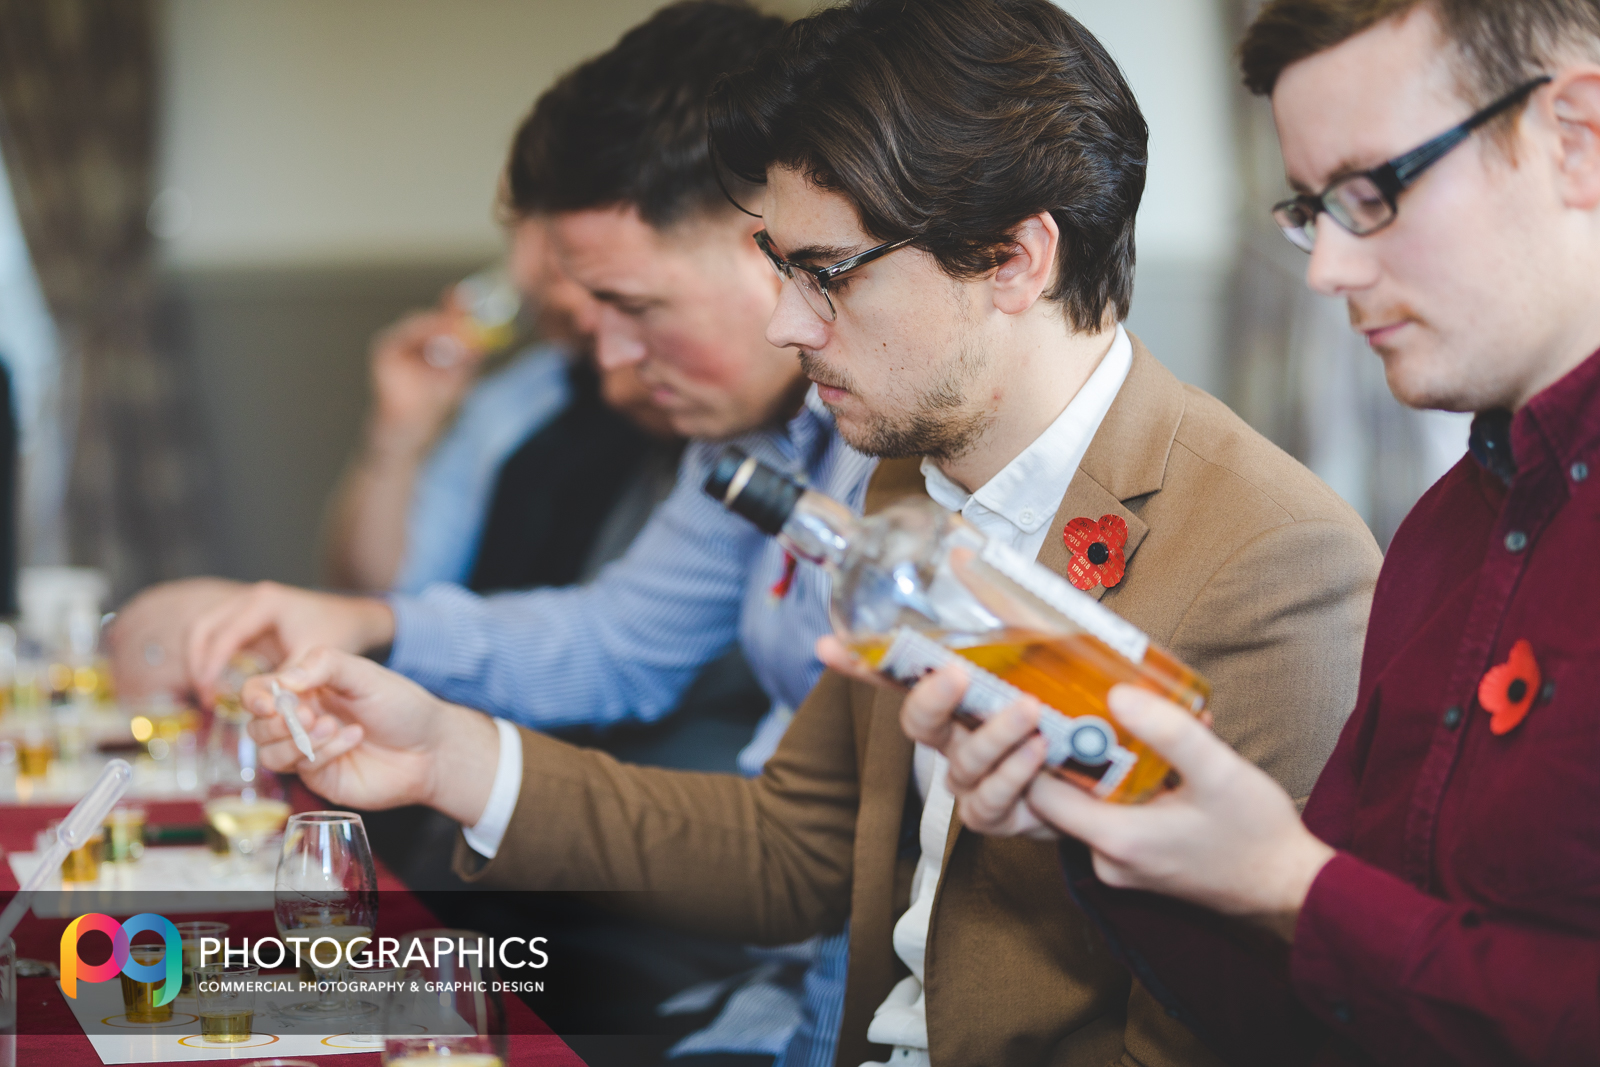 whisky-tasting-event-photography-glasgow-edinburgh-scotland-8.jpg